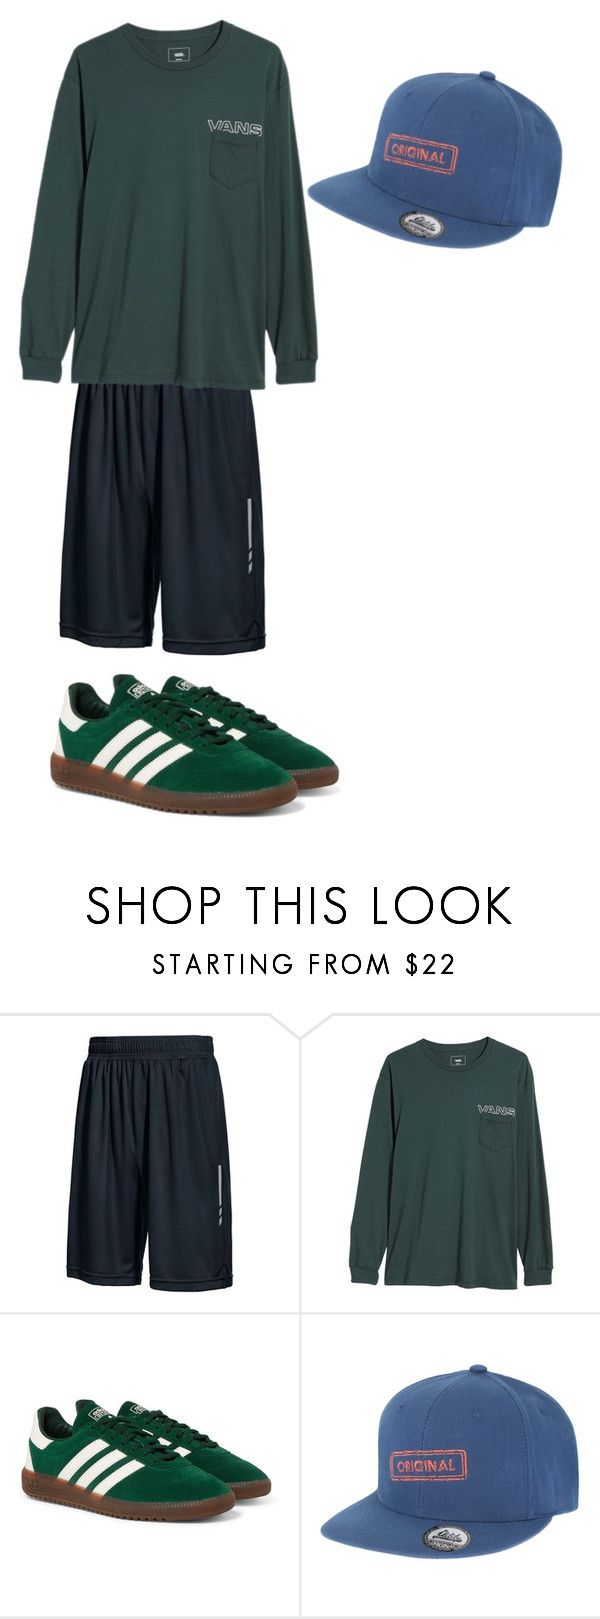 """Dance Gear #3"" by nerderdame ❤ liked on Polyvore featuring Ideology, Vans, adidas Originals, men's fashion, menswear, casual, dance and workout"